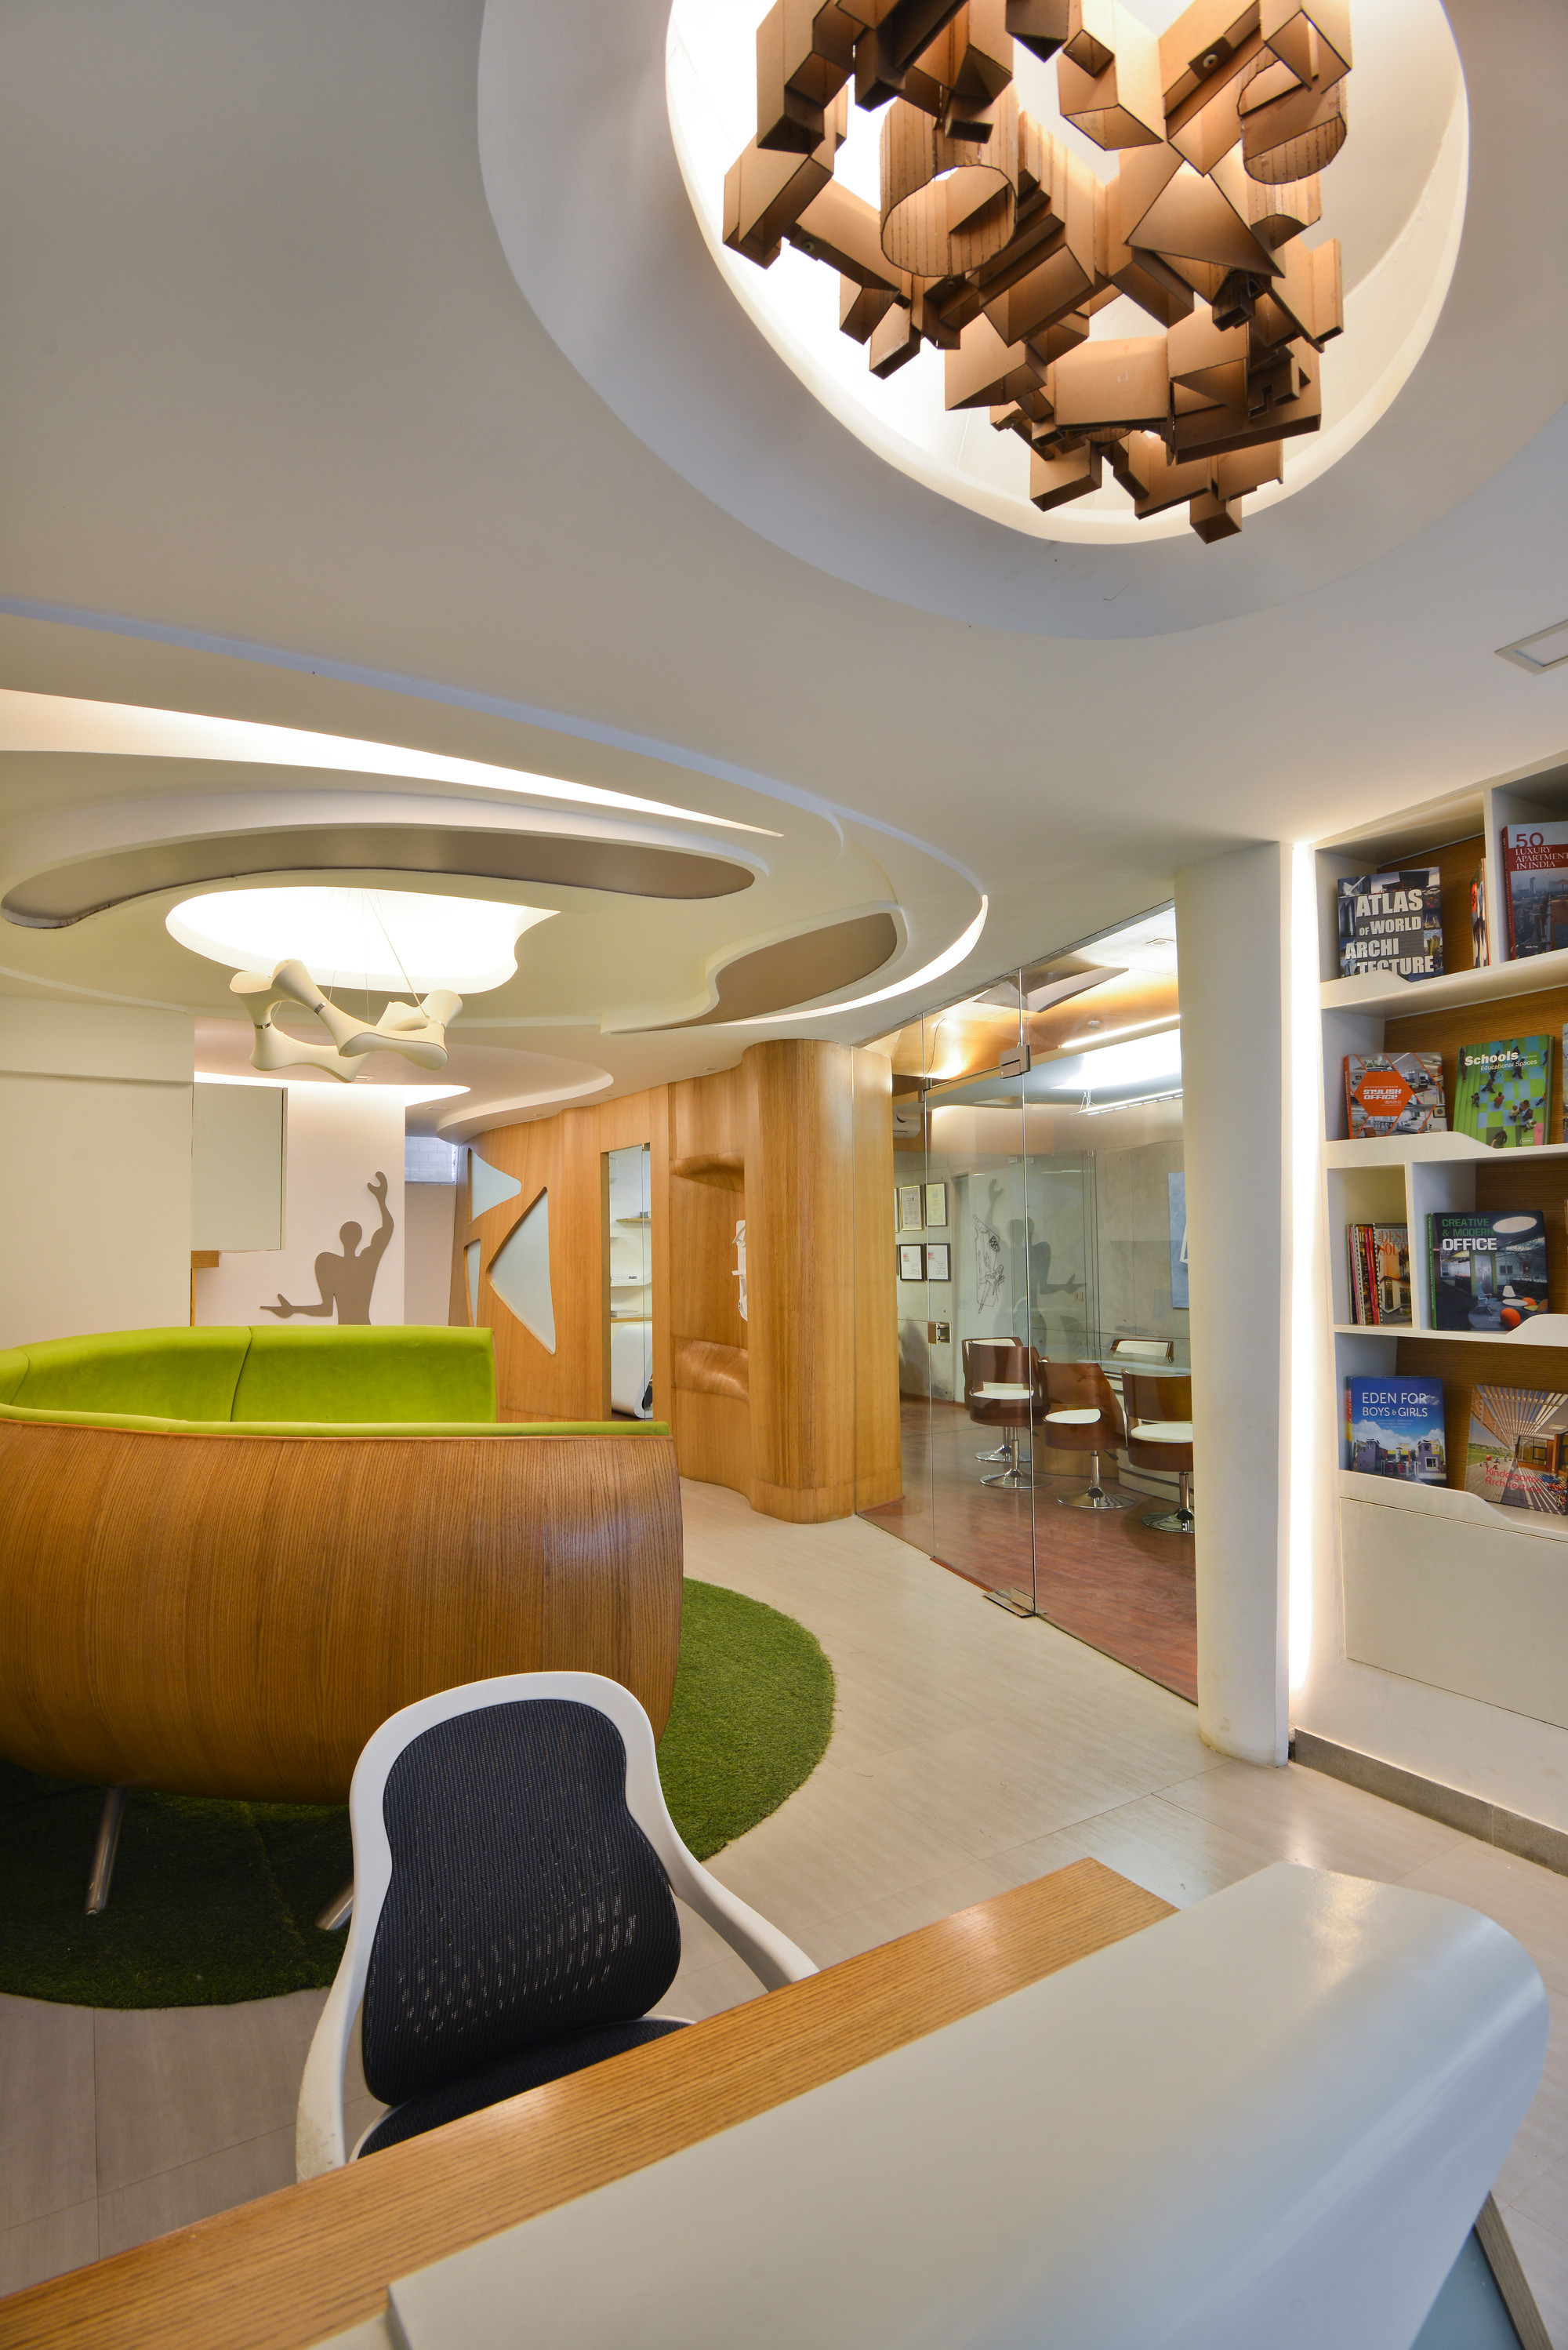 Gallery of architect s office spaces architects ka 9 for Space design group architects and interior designers